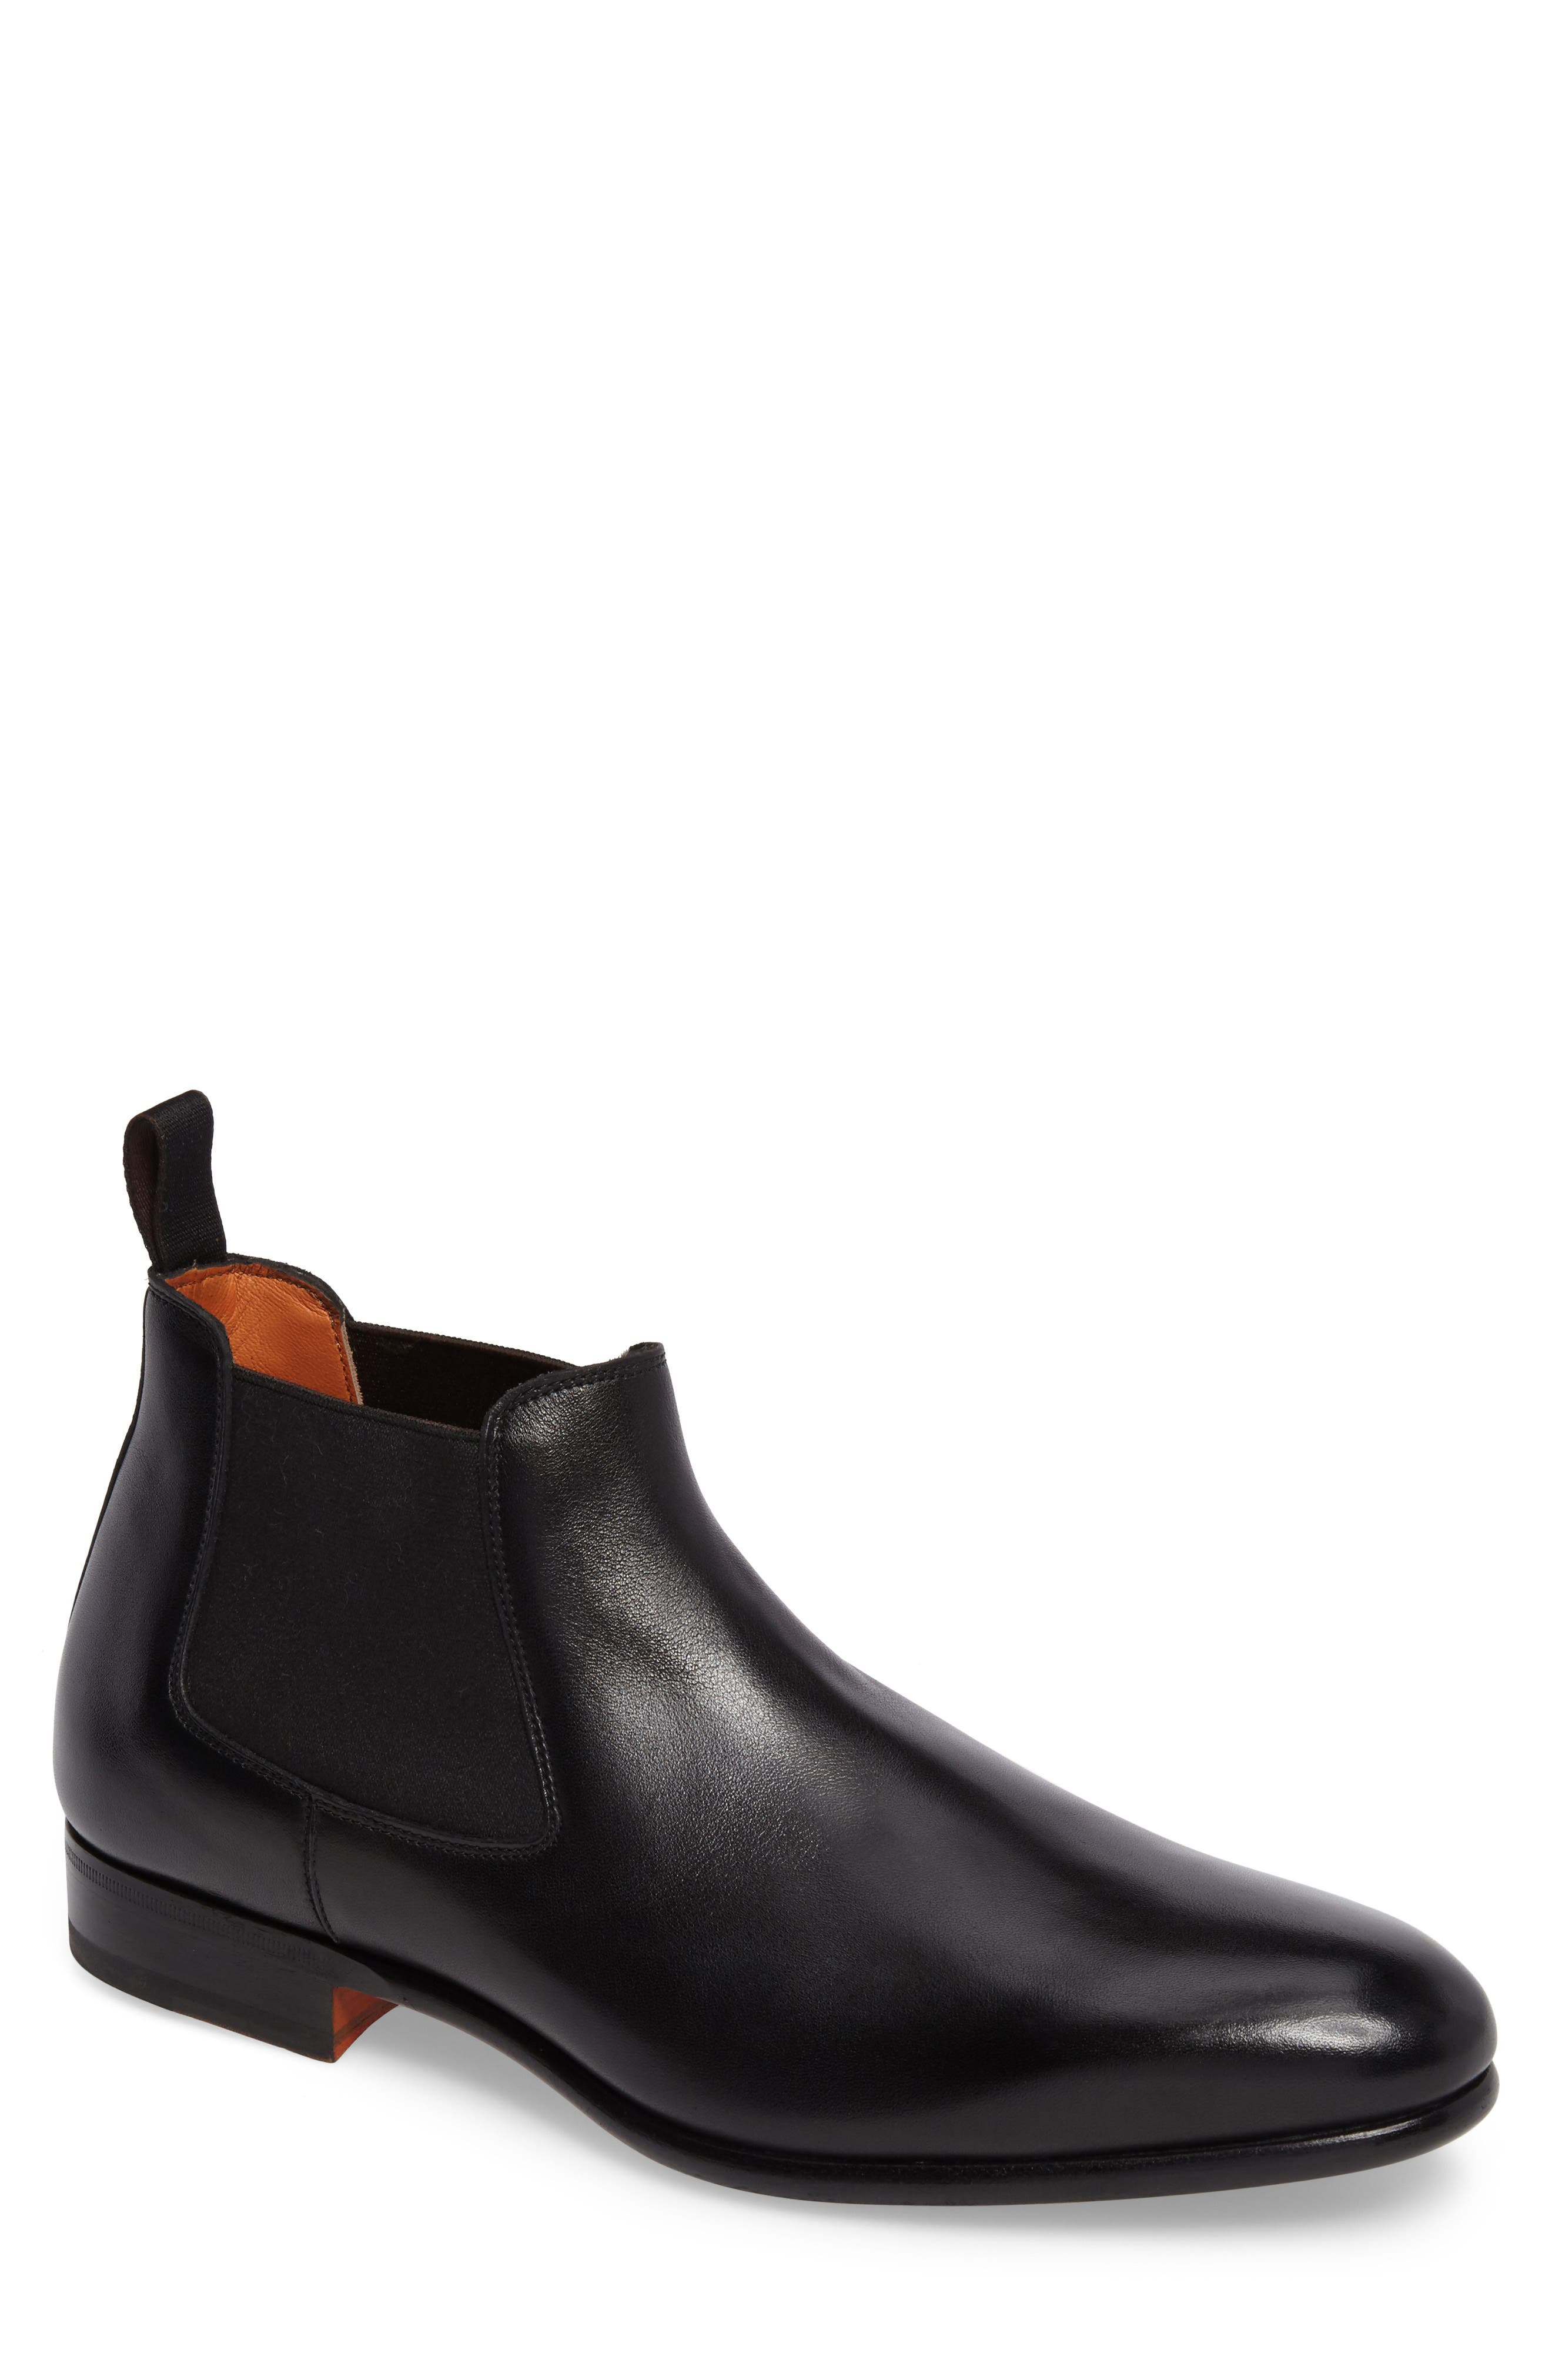 Gunther Chelsea Boot,                         Main,                         color,